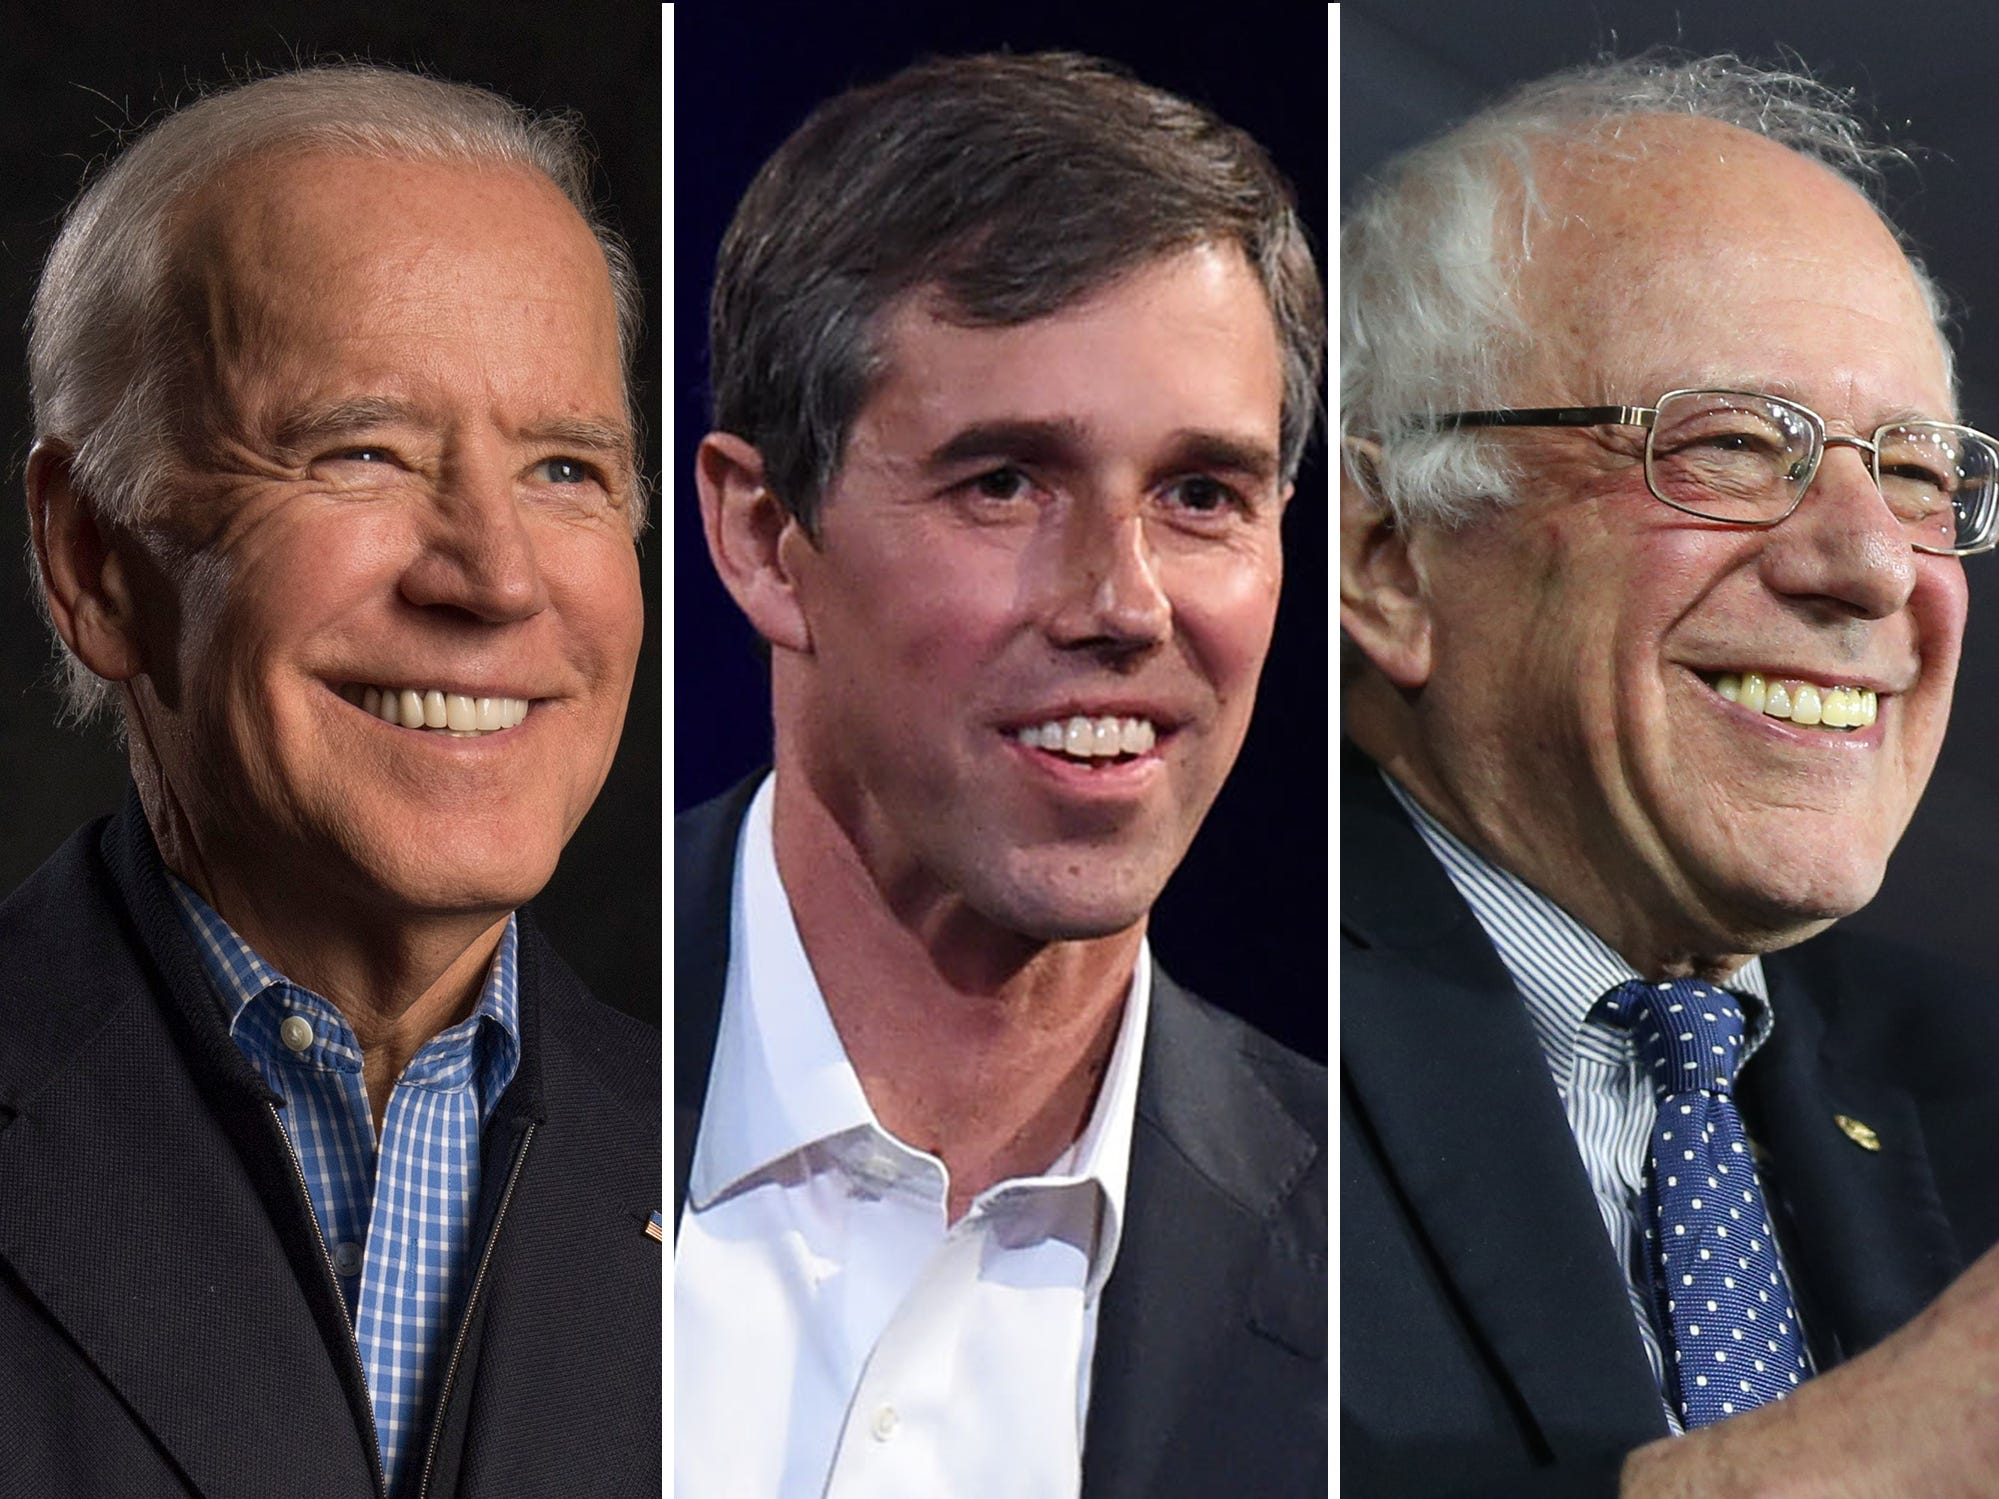 How long can Joe Biden, Bernie Sanders and Beto O'Rourke afford to wait to jump into 2020 race?